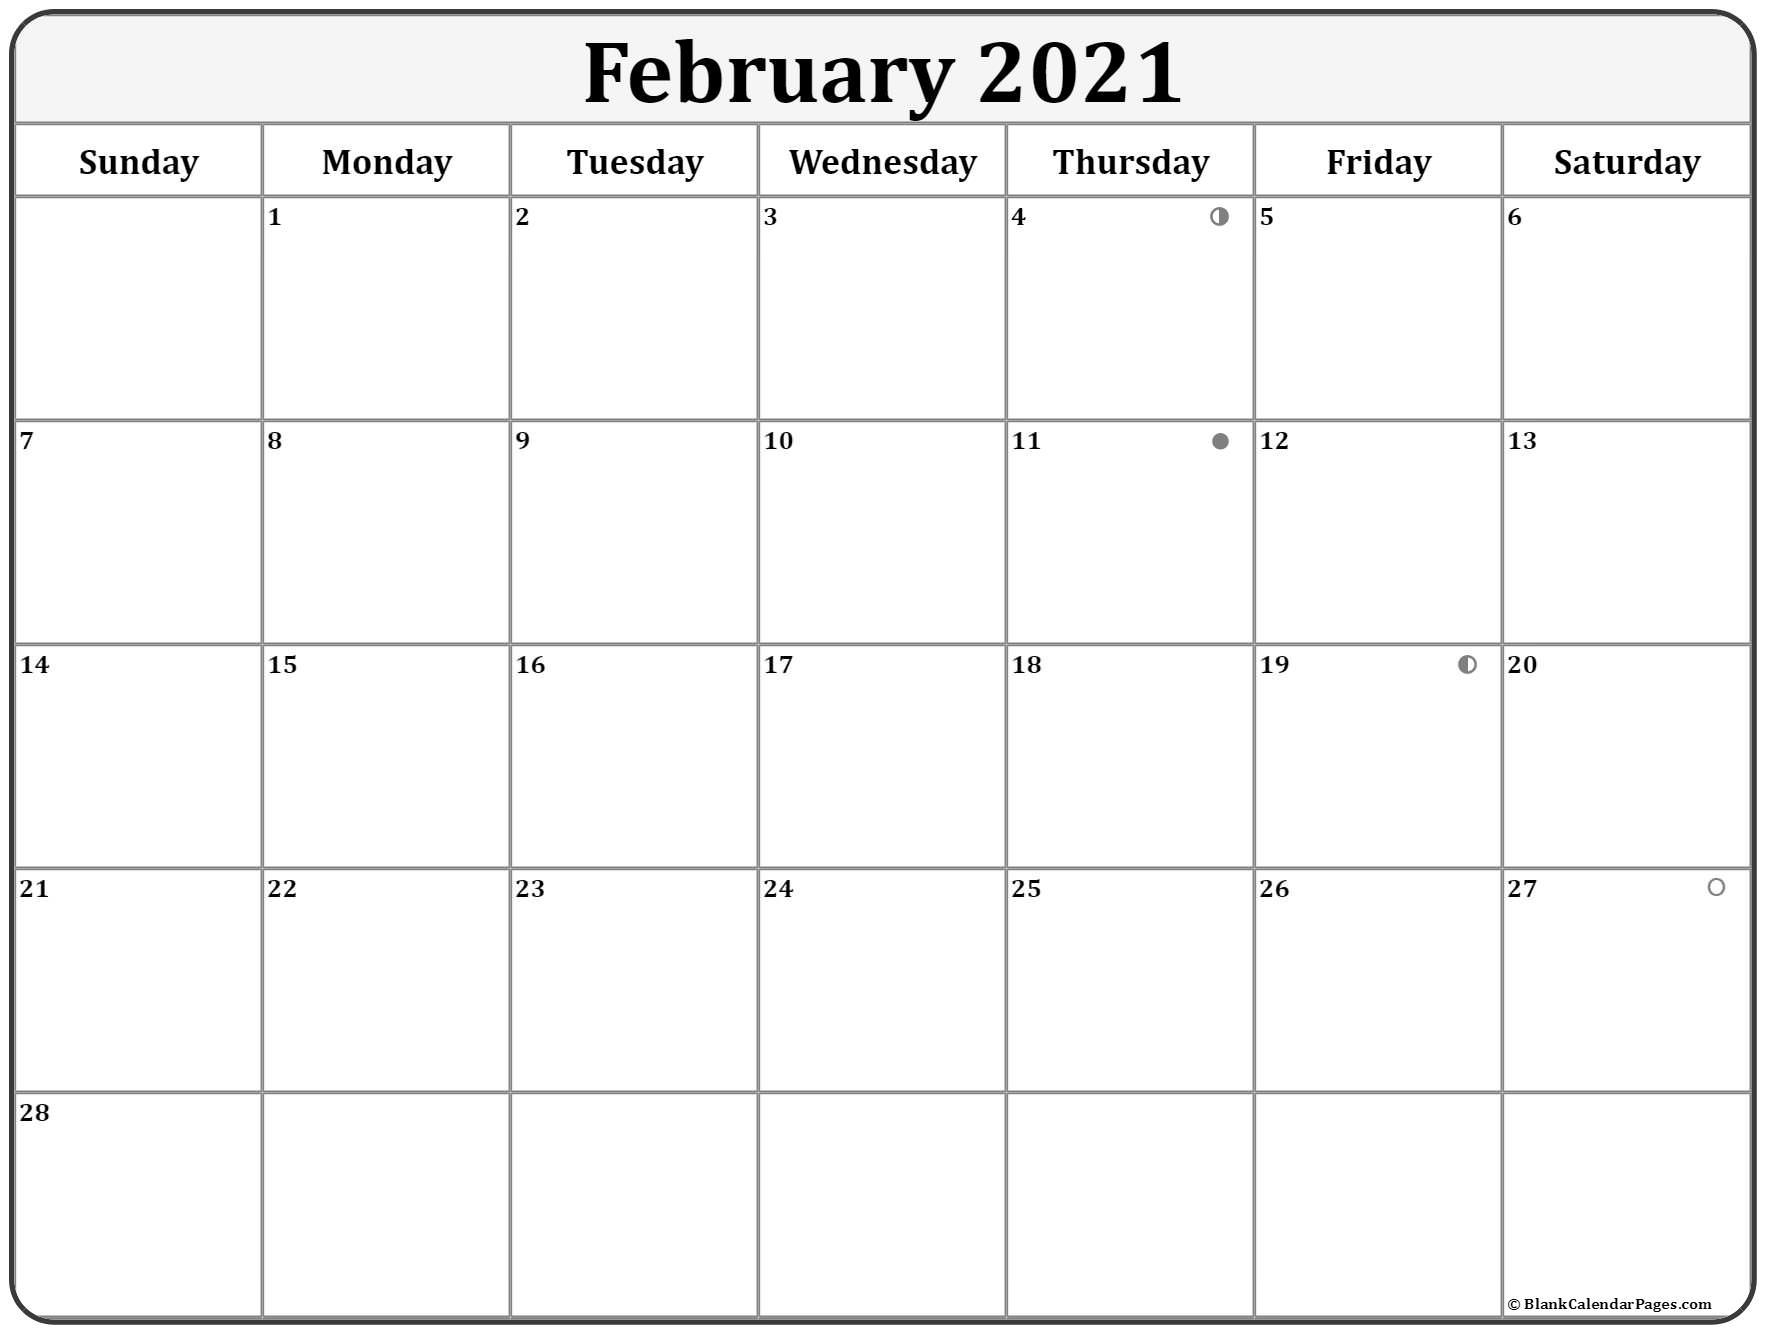 February 2021 Lunar Calendar | Moon Phase Calendar